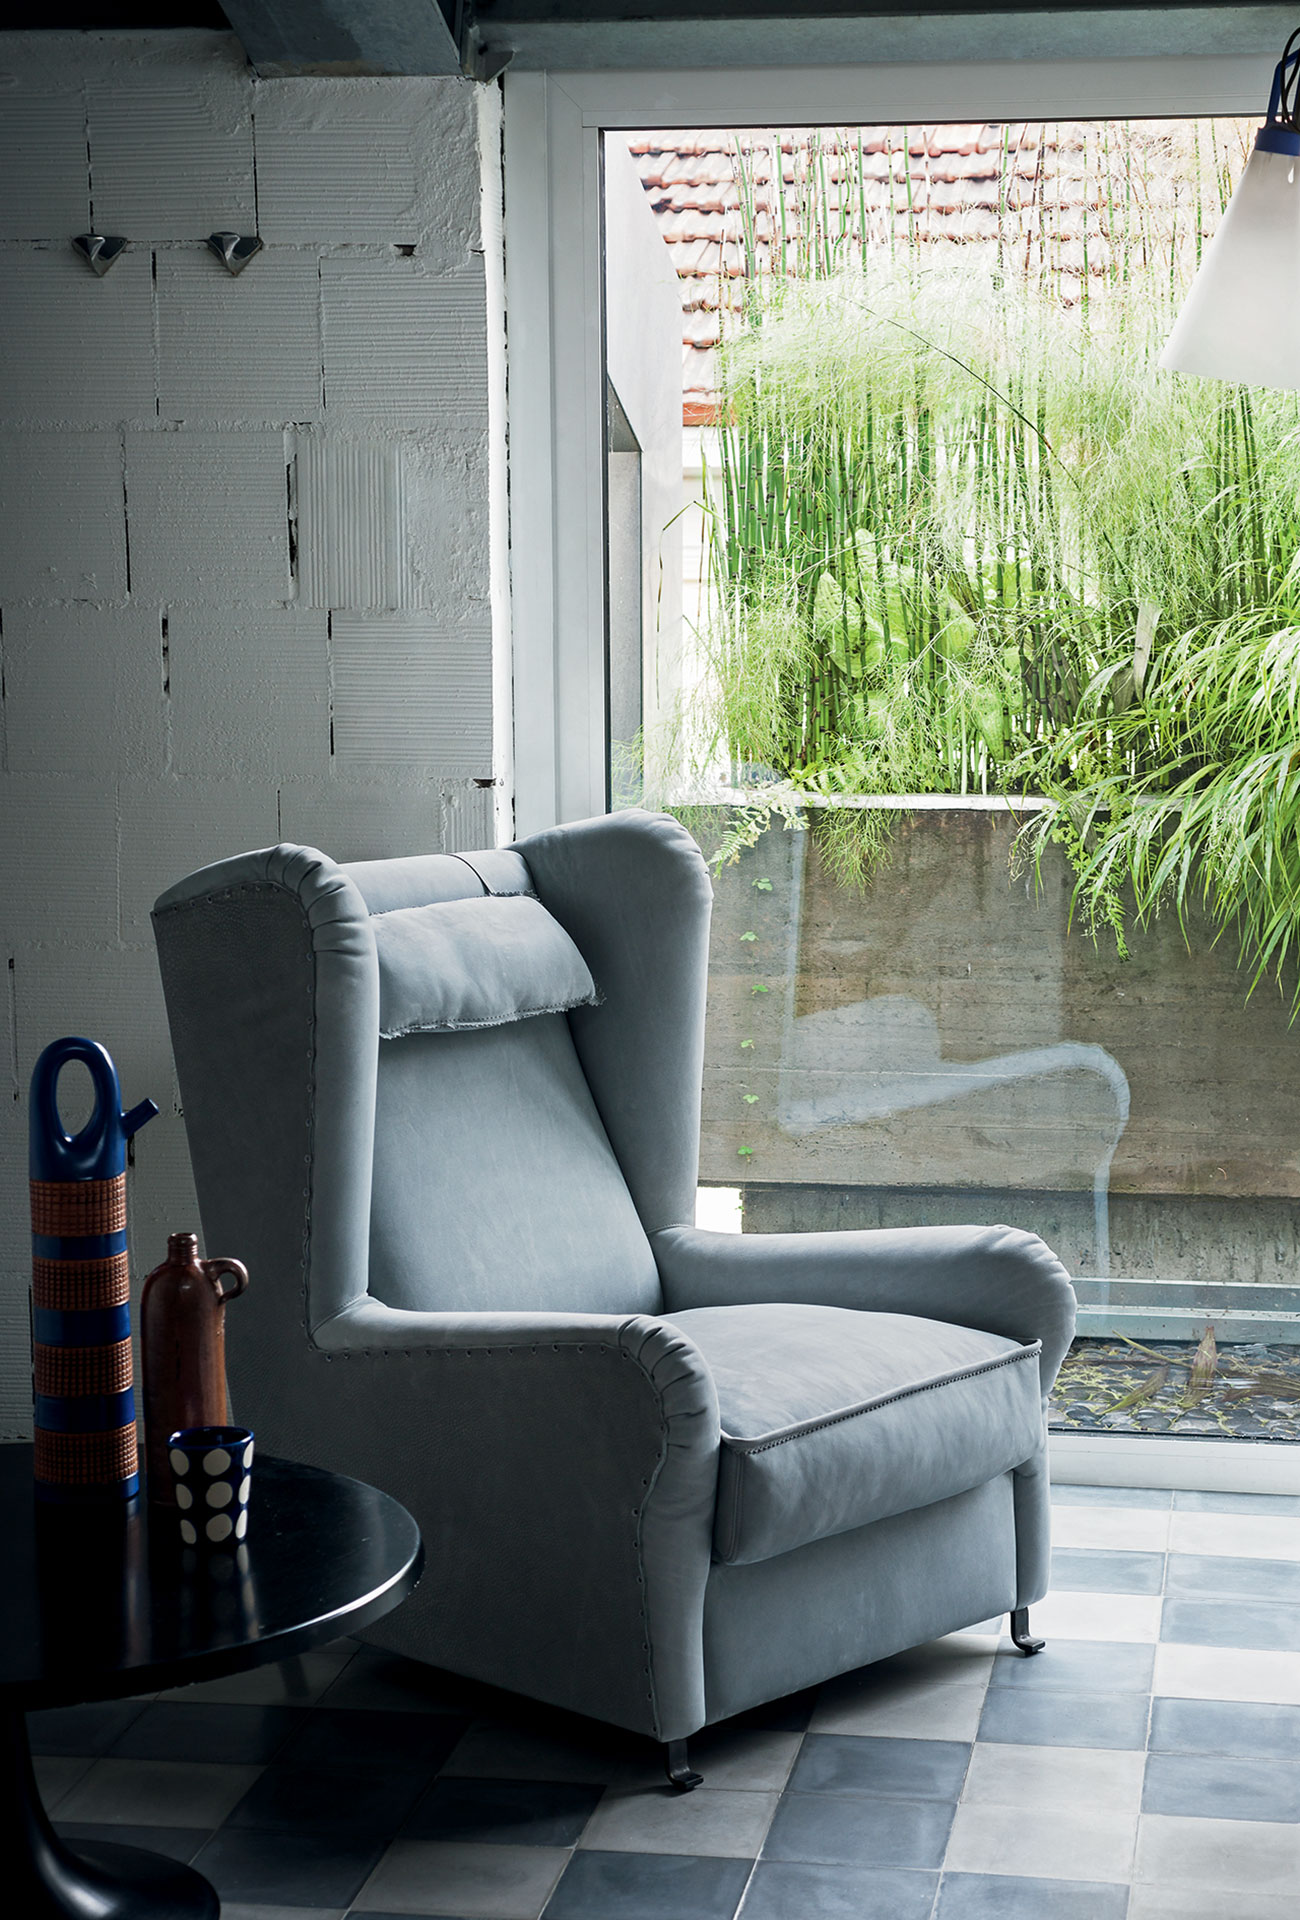 Paola navone 8 baxter for Baxter paola navone